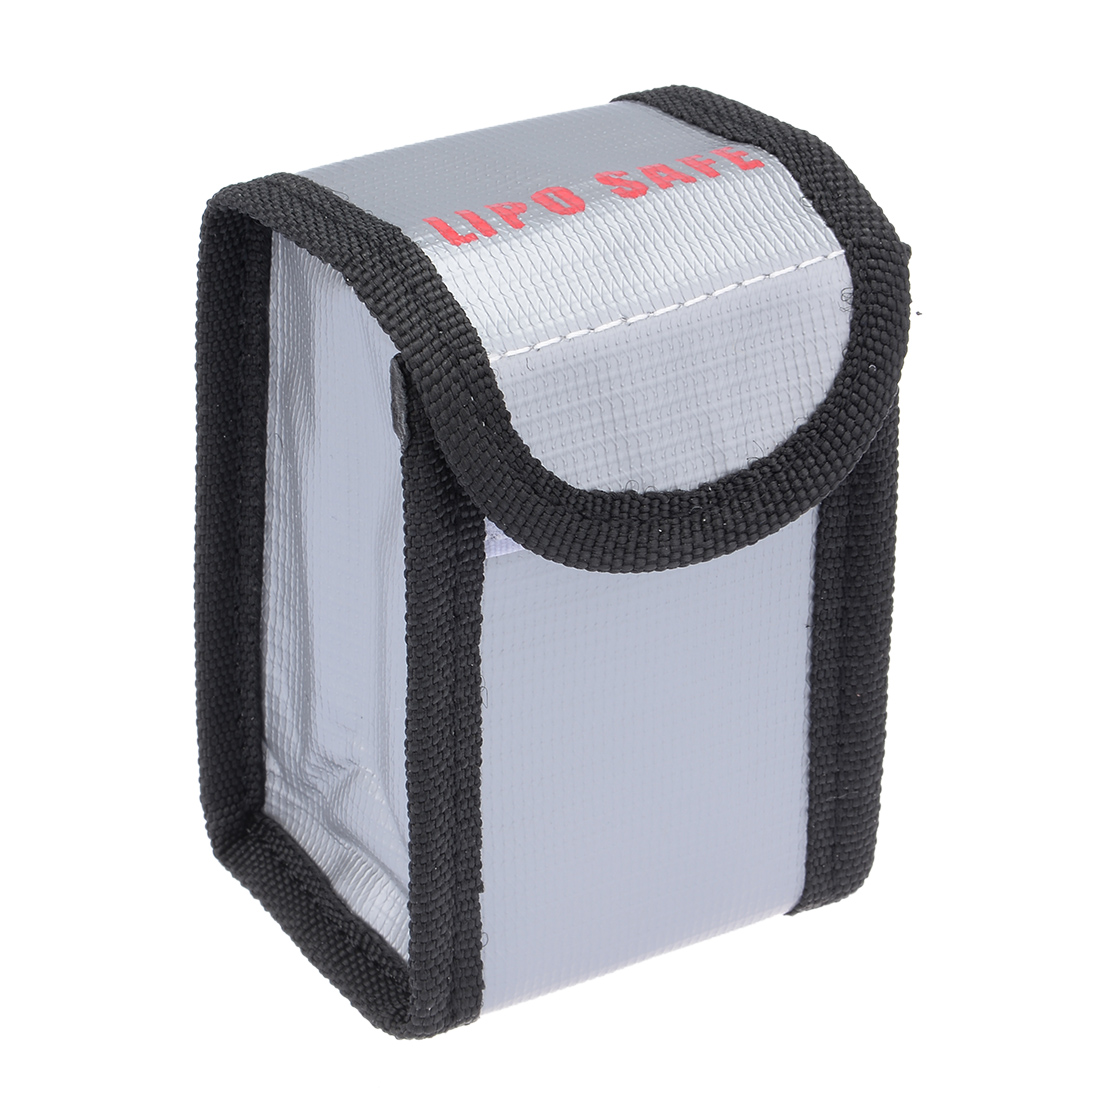 Lipo Battery Fireproof Explosionproof Bag Storage Guard Safe Charging Holder 64mm x 50mm x 95mm